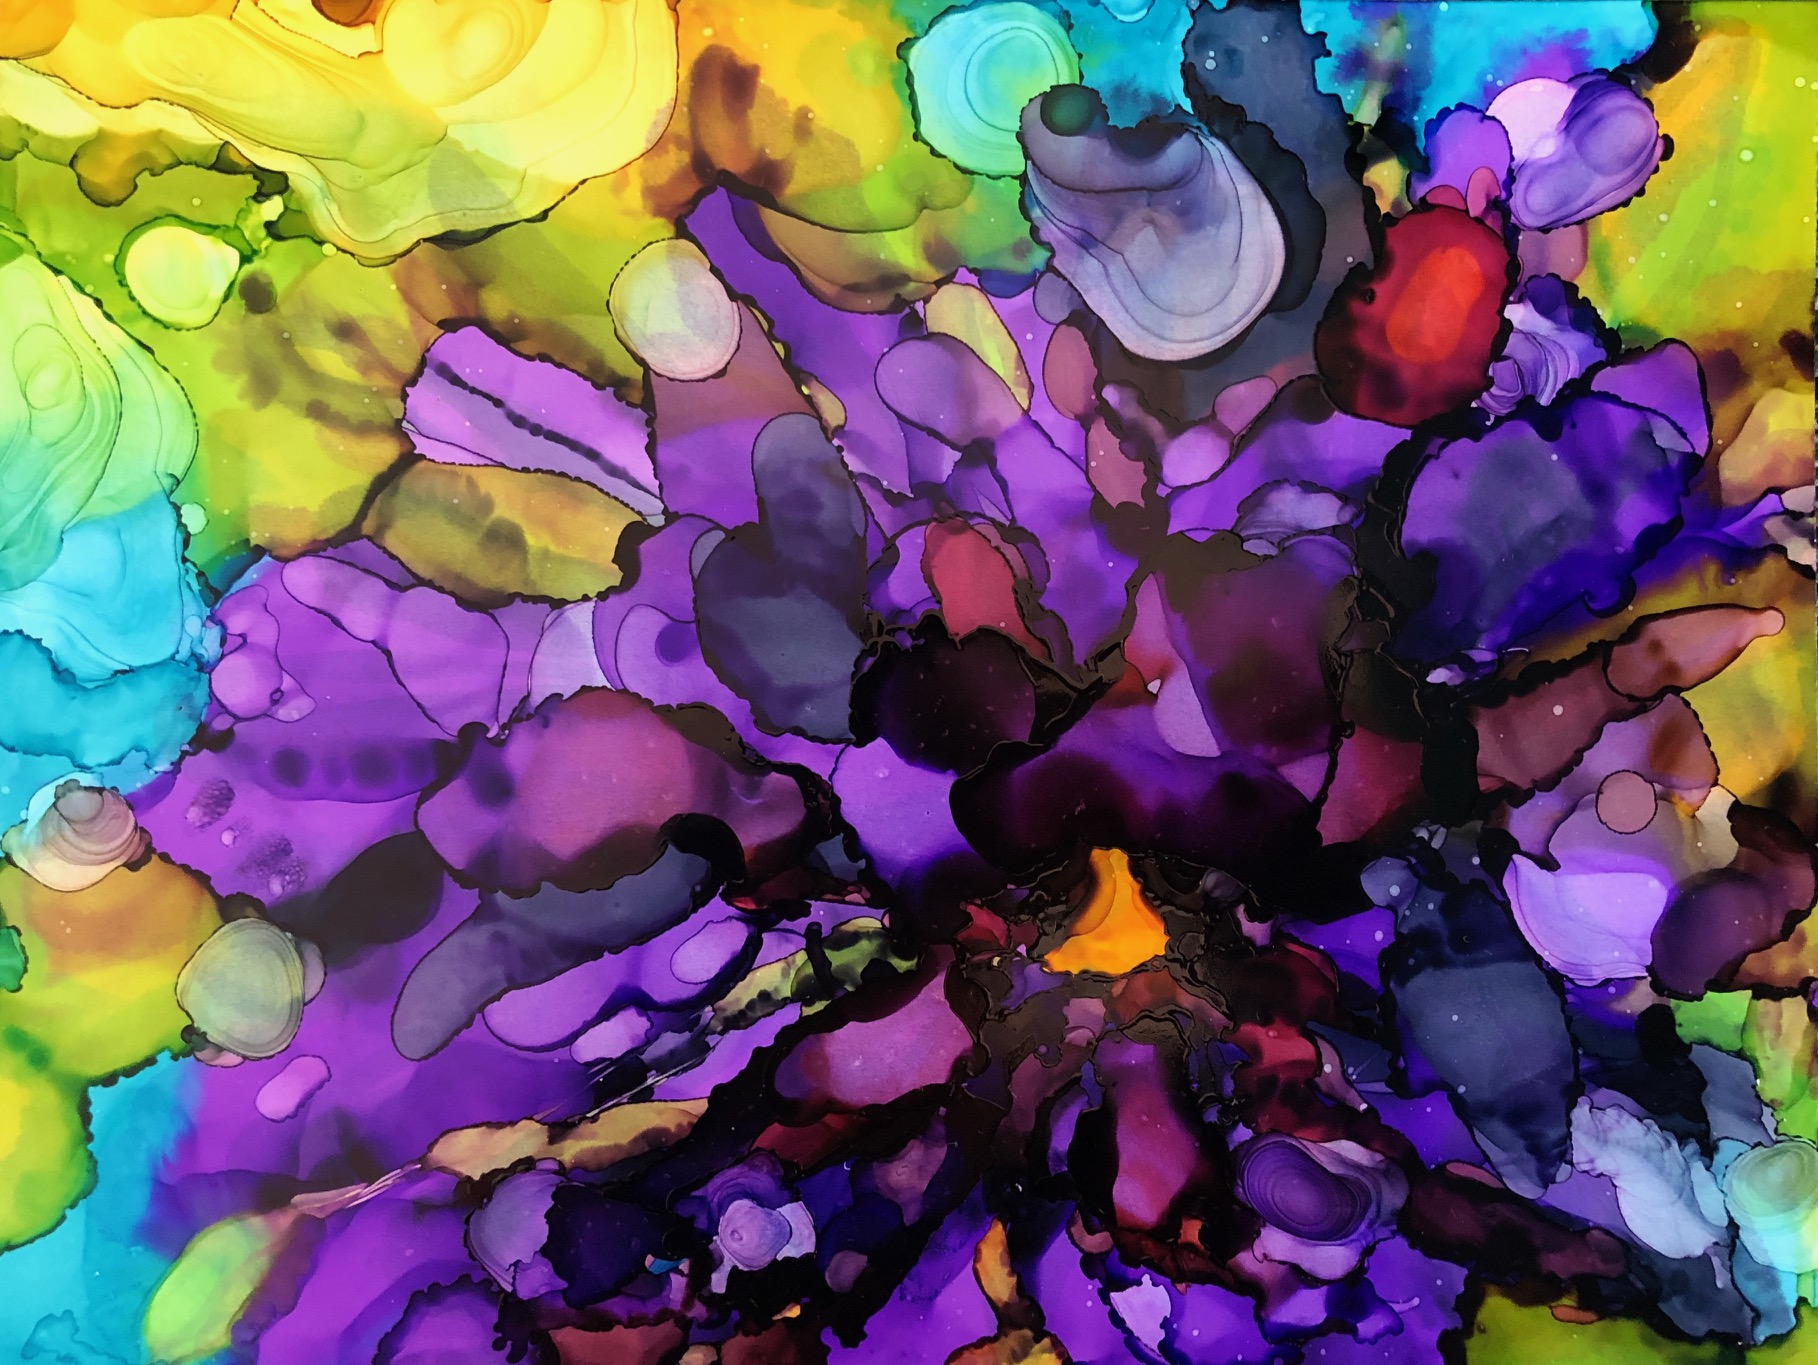 """Bloom, alcohol ink on yupo paper, 9""""x12"""" $120"""